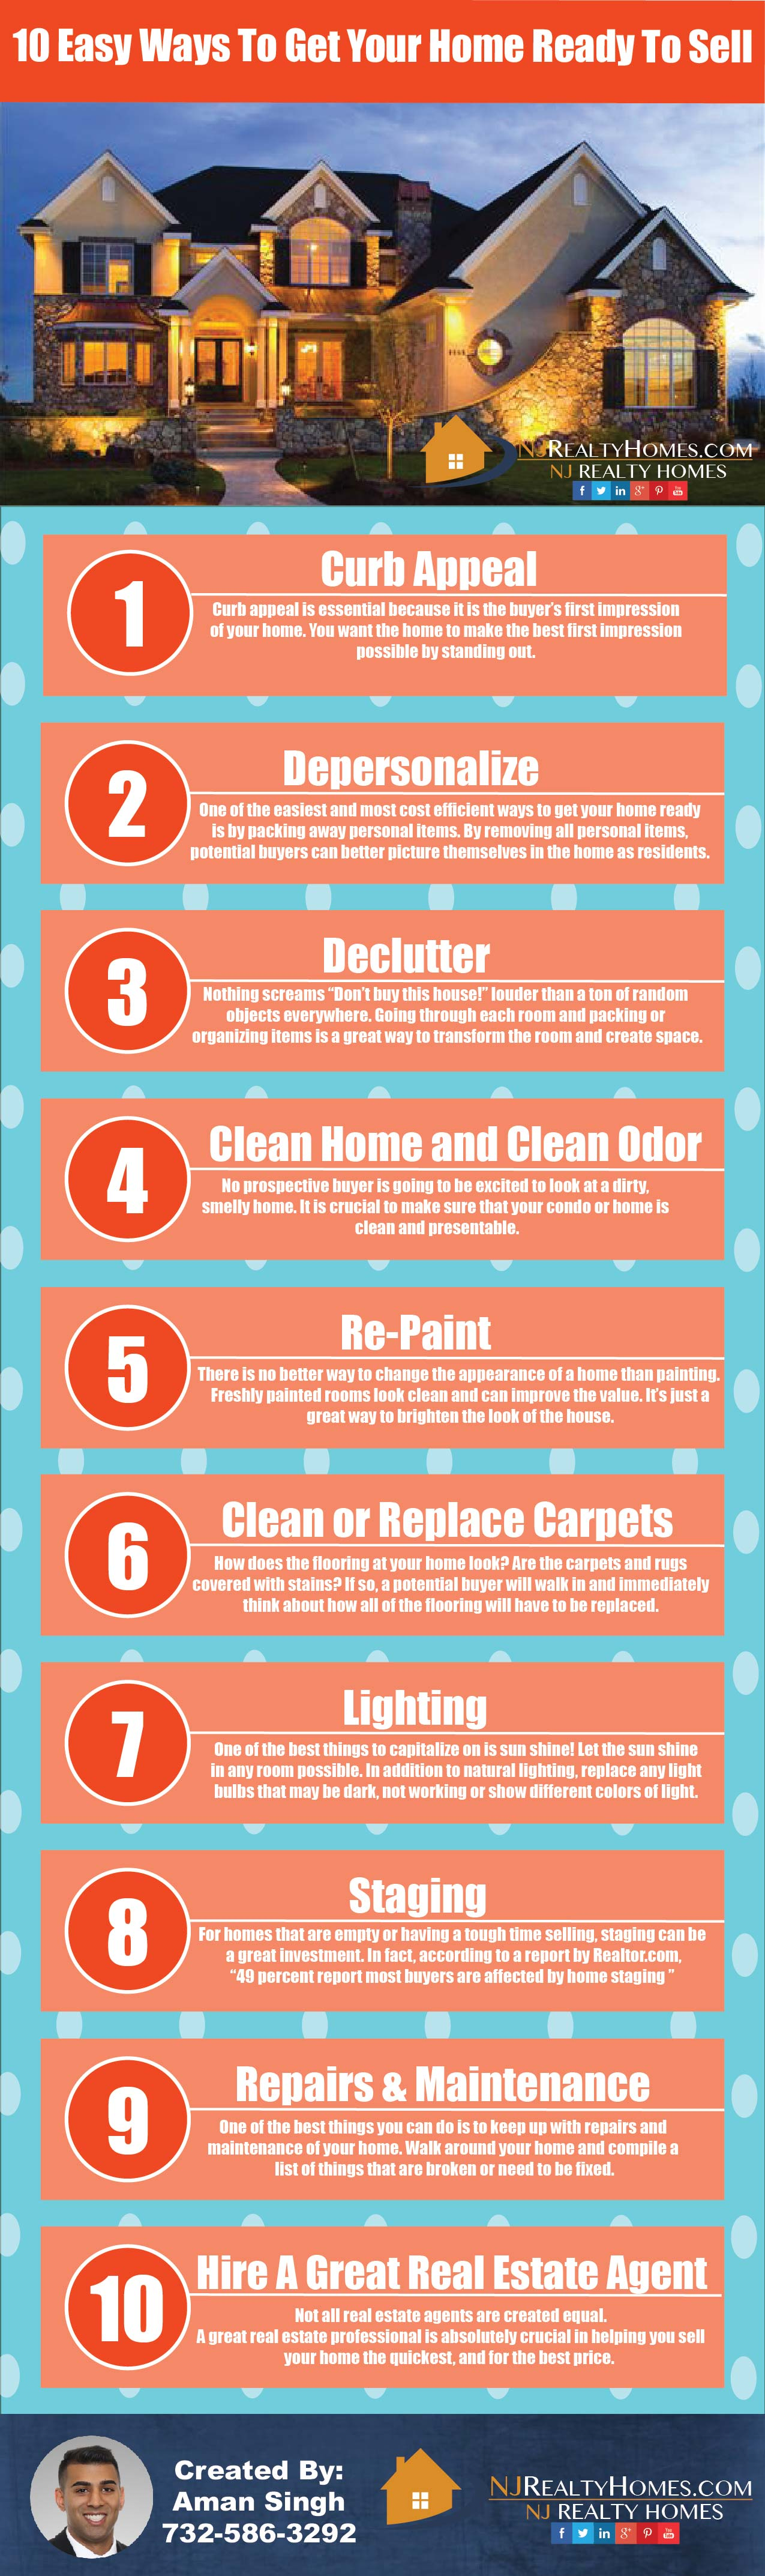 10-Easy-Ways-To-Get-Your-Home-Ready-To-Sell-Infographic-01